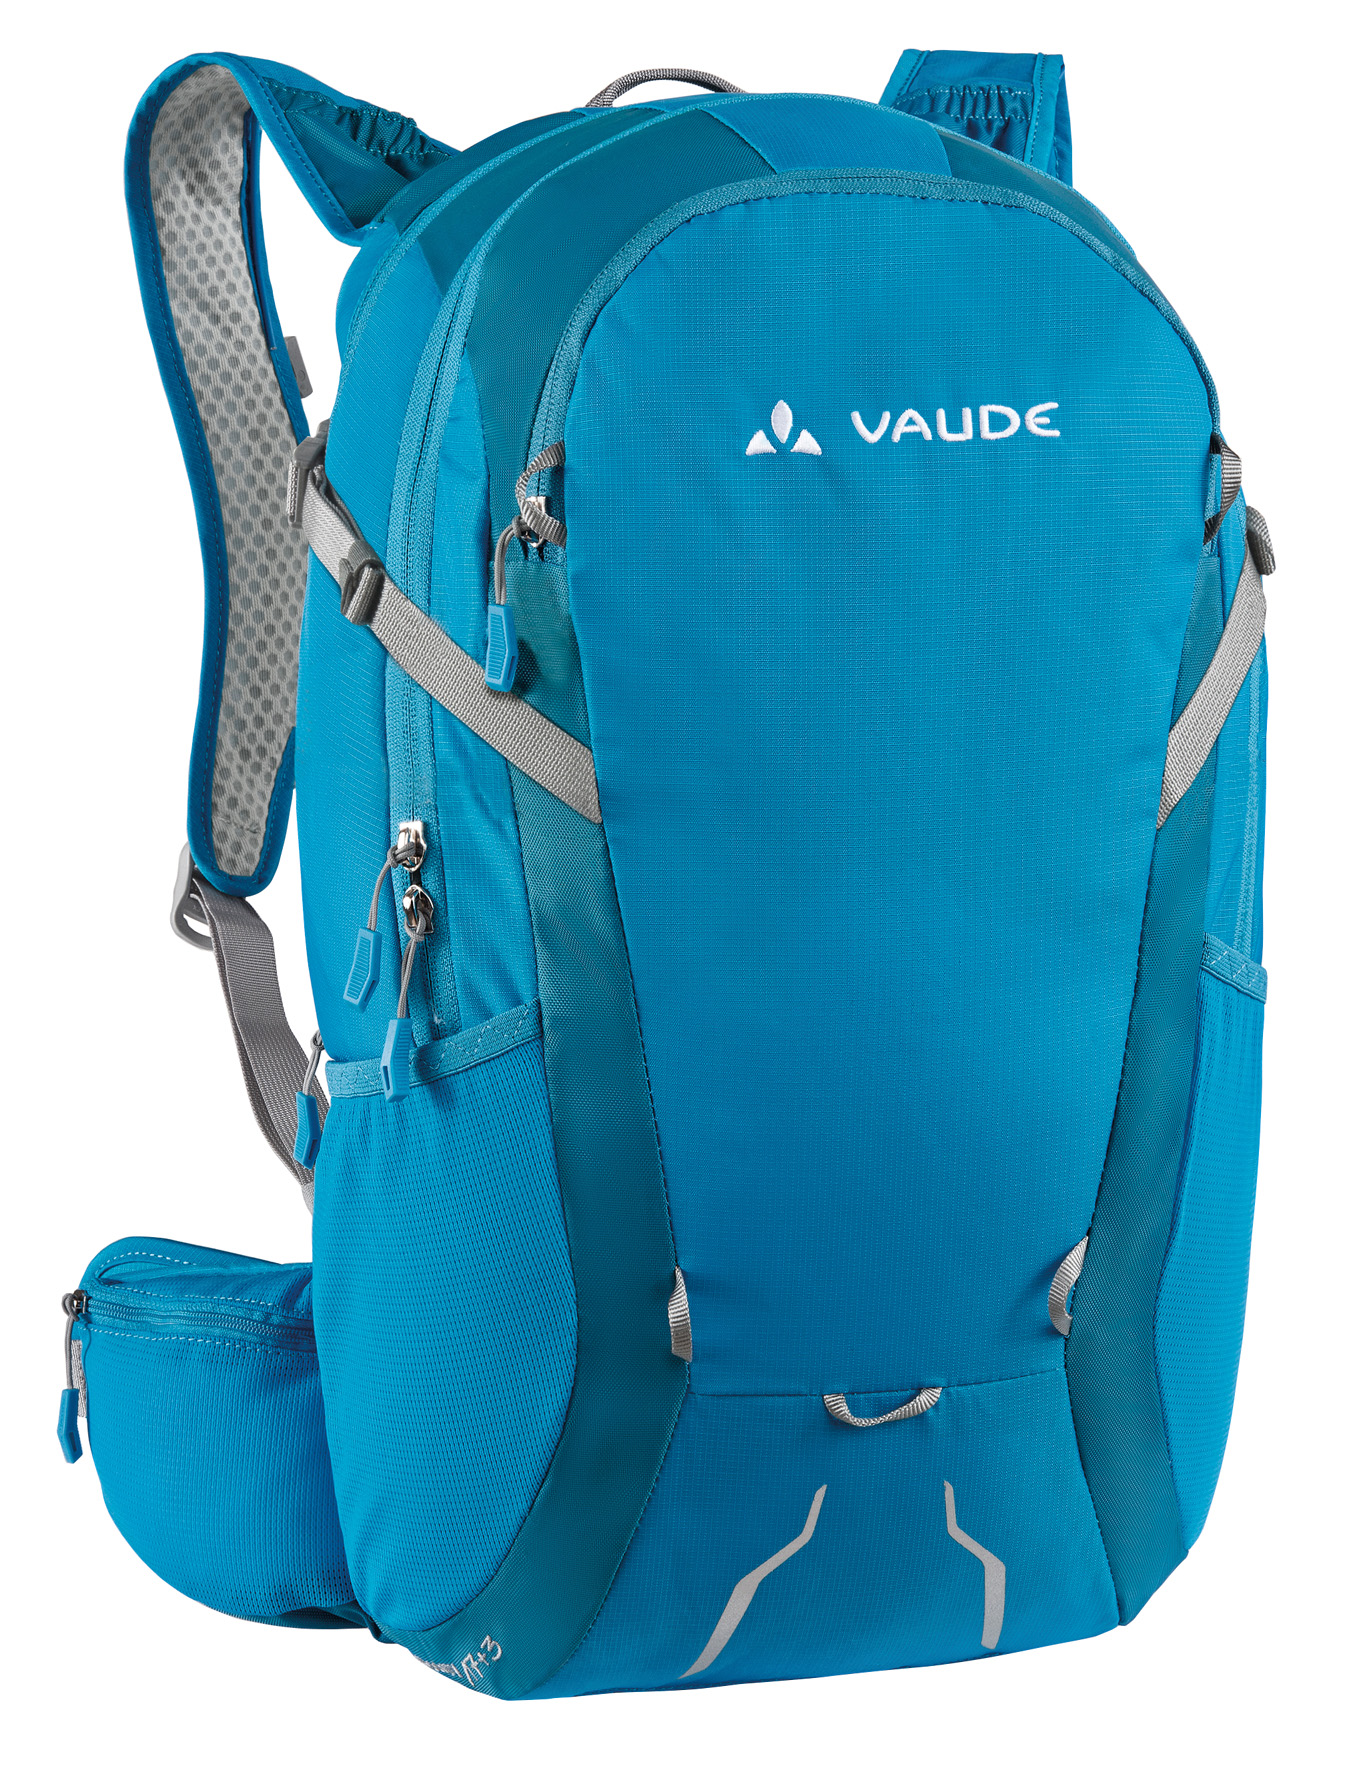 Roomy 12+3 teal blue/seablue  - schneider-sports